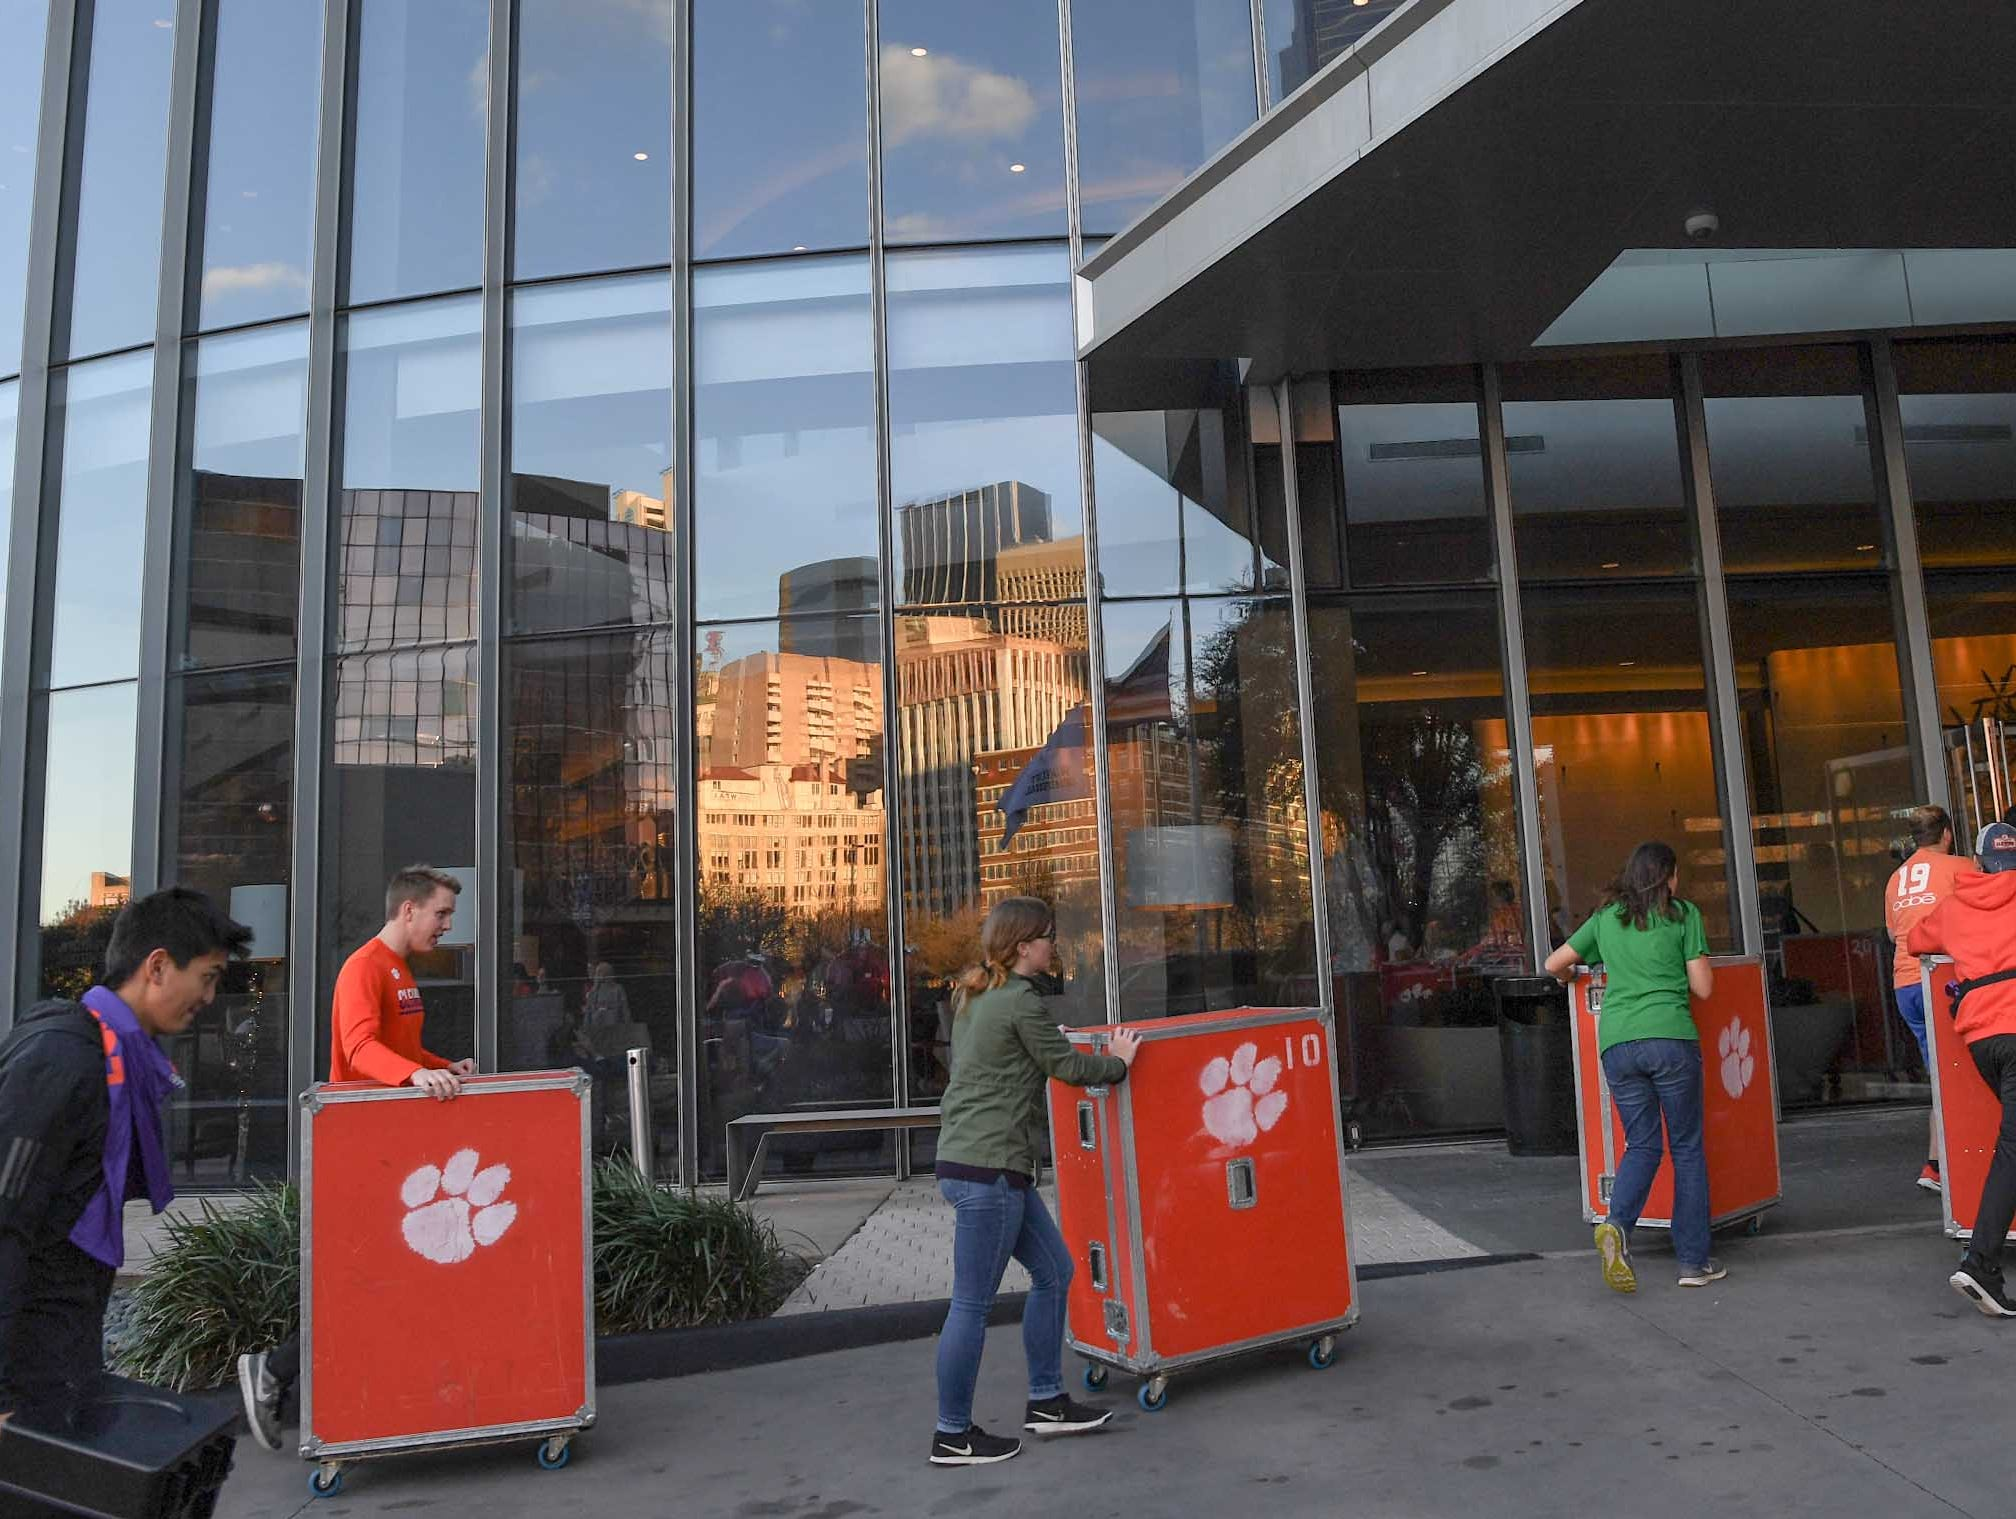 A skyline of downtown buildings reflect in the windows of the hotel after Clemson Band practice at the Omni in Dallas December 27, 2018.